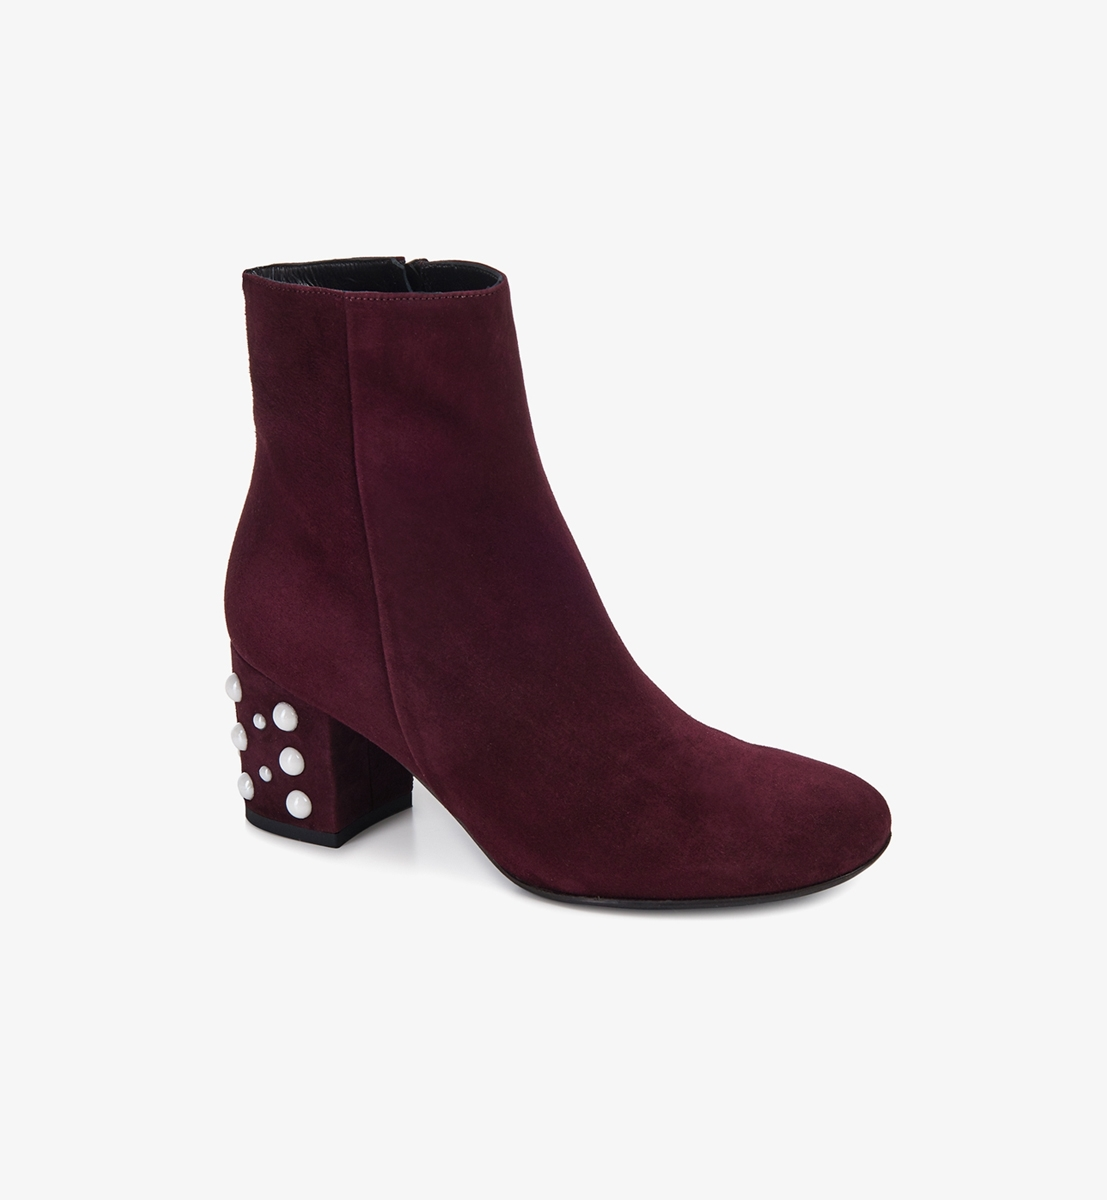 Buy your velvet boots BERTIE LONDON on Vestiaire Collective, the luxury consignment store online. Second-hand Velvet boots BERTIE LONDON Blue in Velvet available.